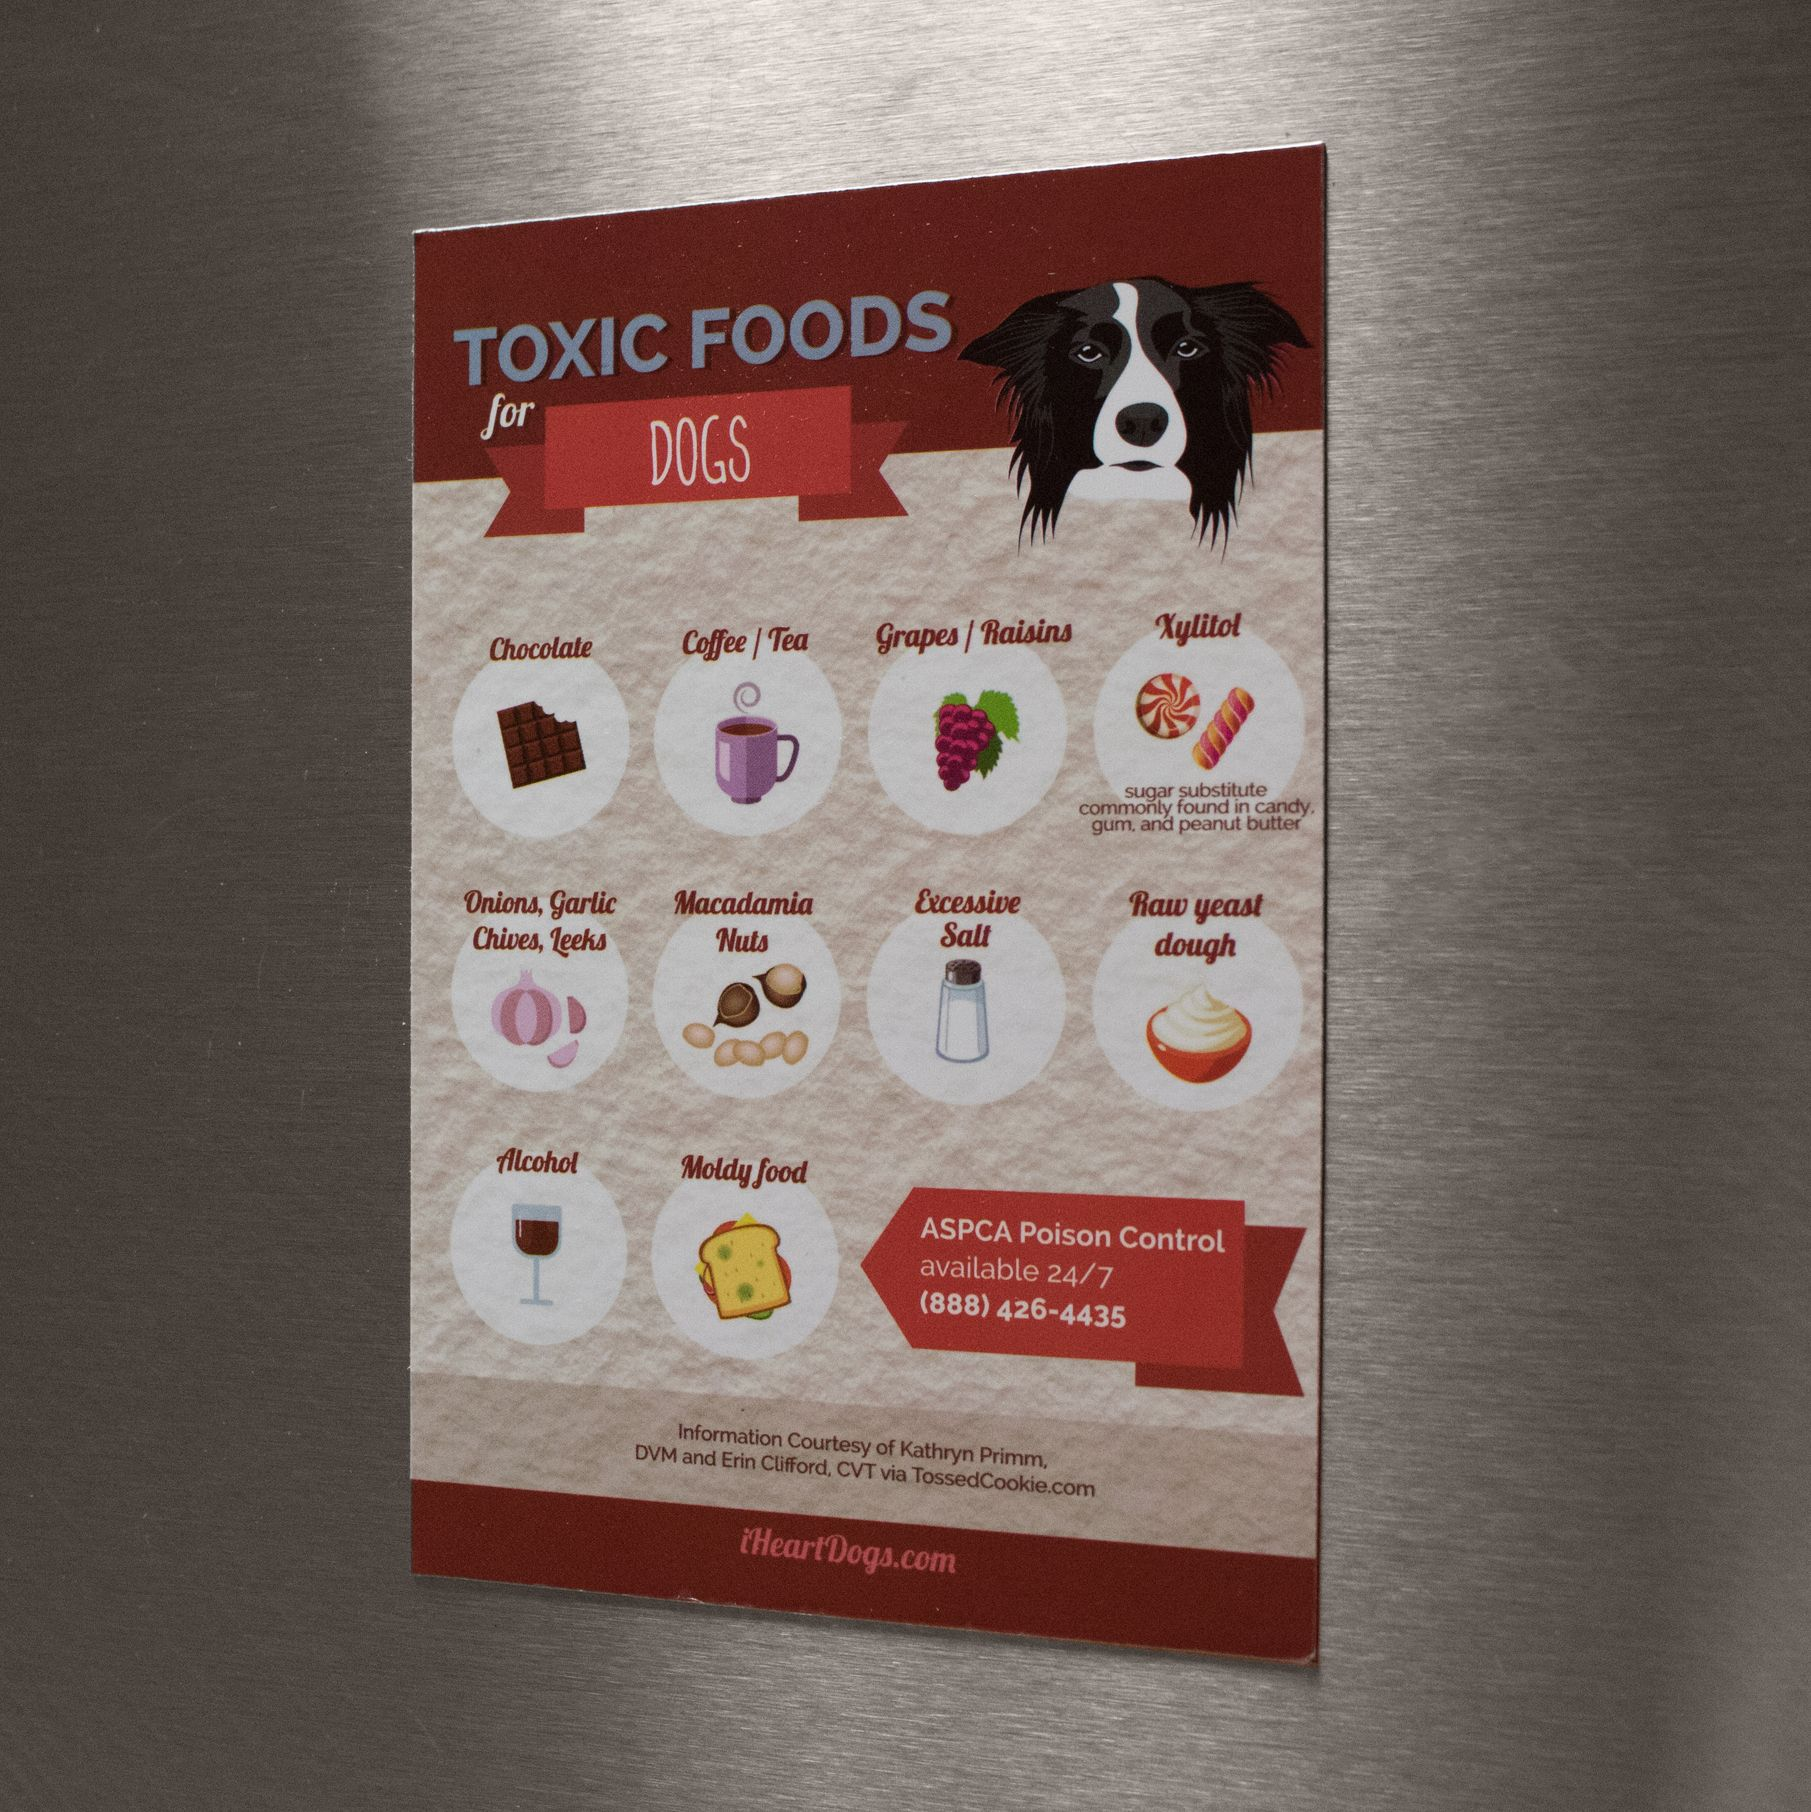 Toxic Dog Foods Refrigerator Magnet Toxic Foods For Dogs Dog